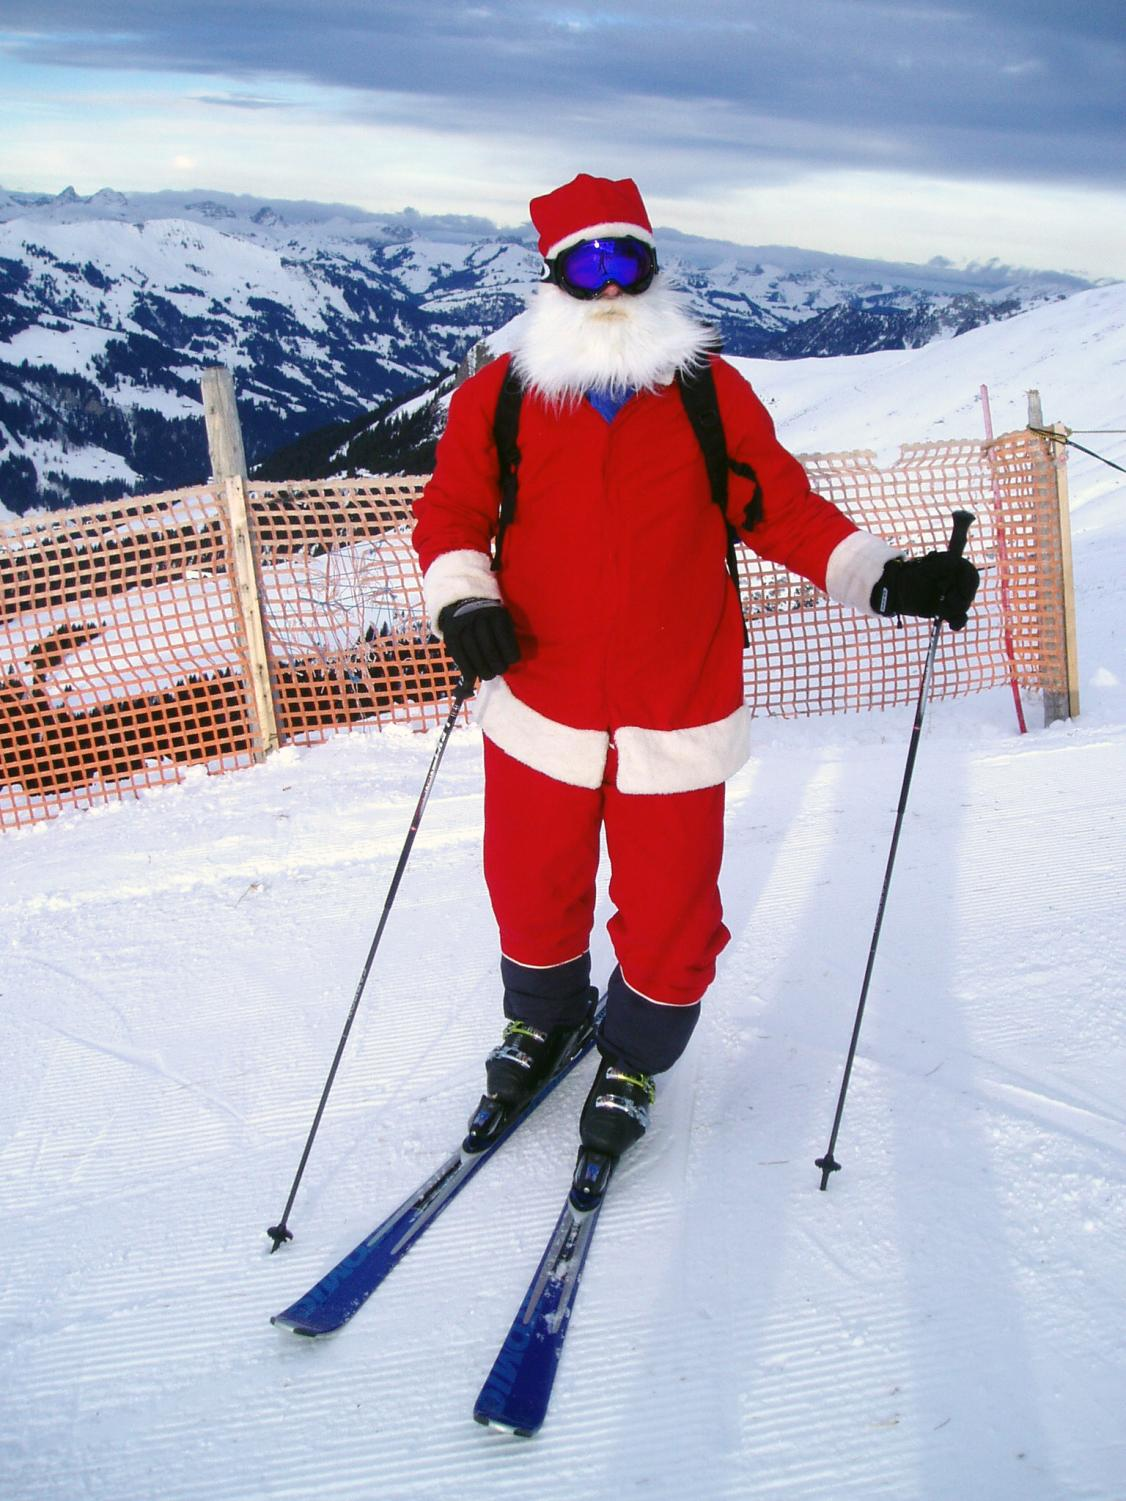 Santa having fun skiing in Switzerland.